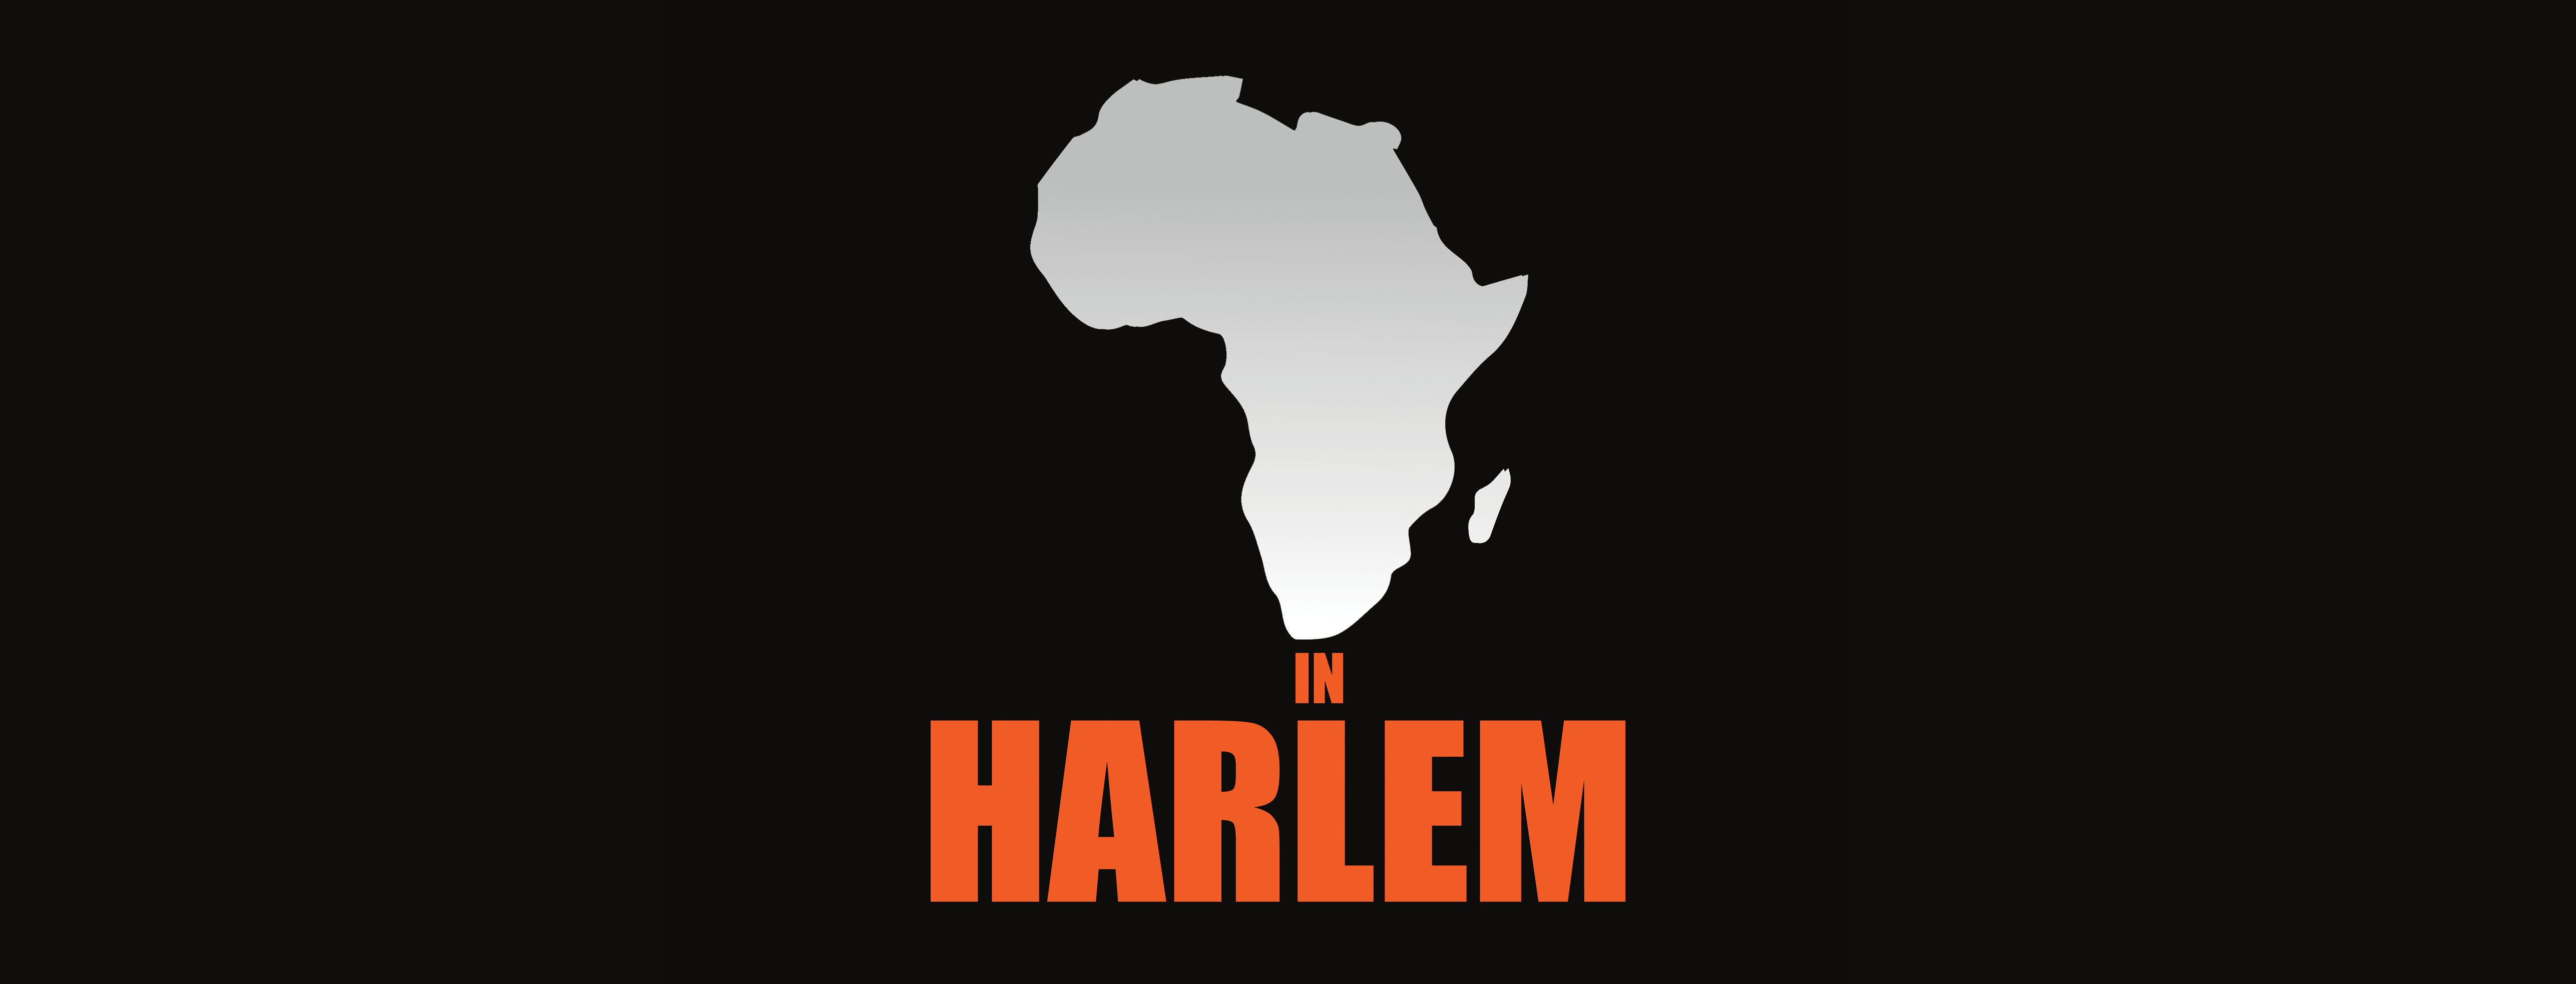 African Immigrants, African American New Yorkers in Harlem and Beyond